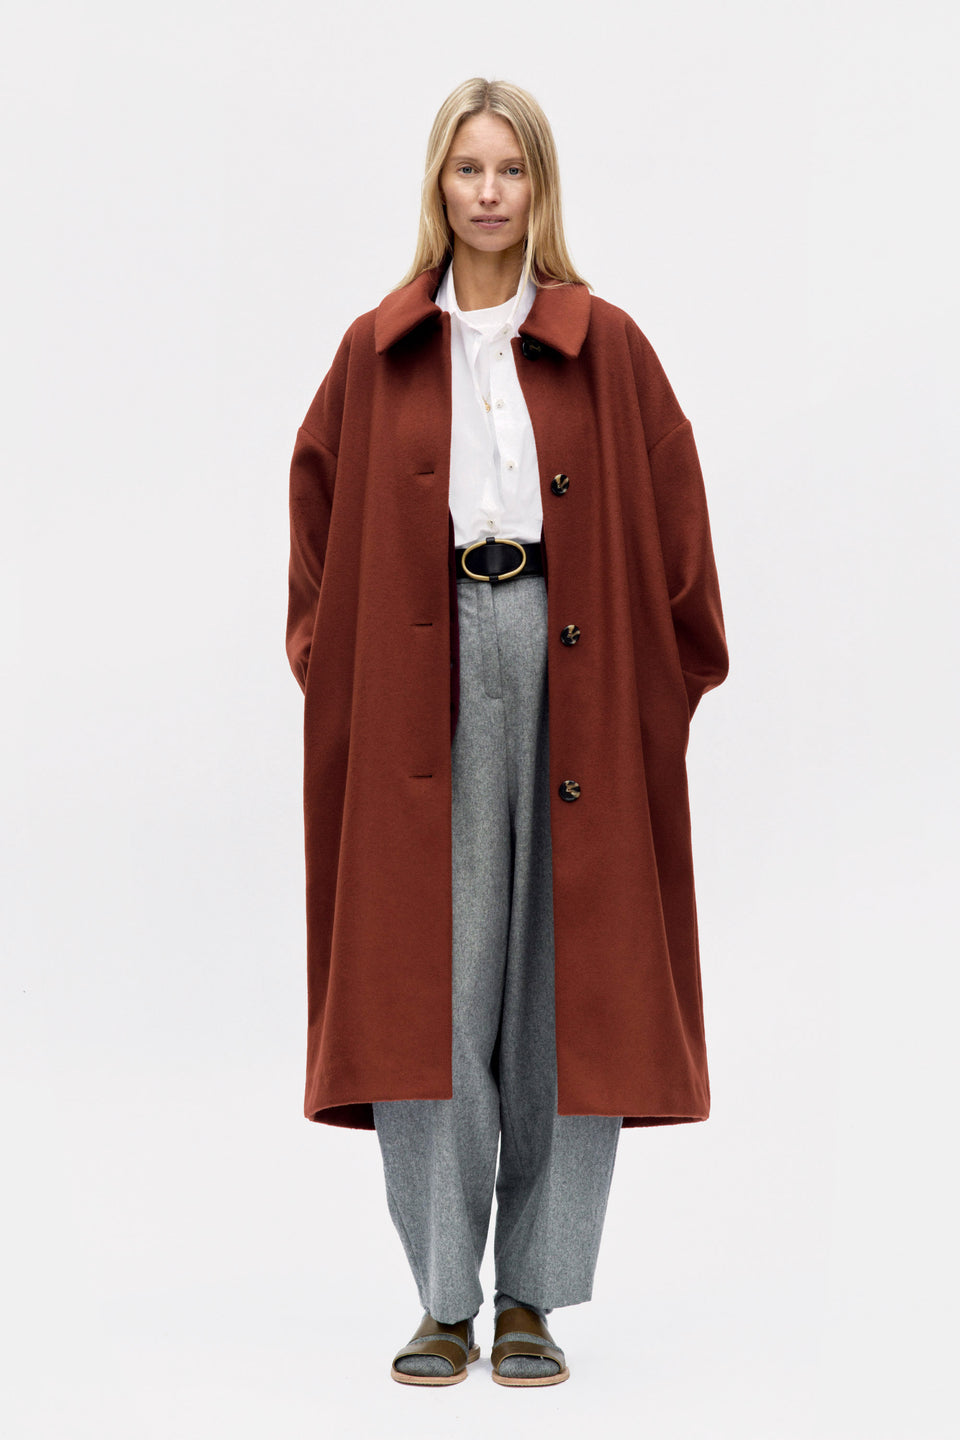 Bunko Coat Rust Wool